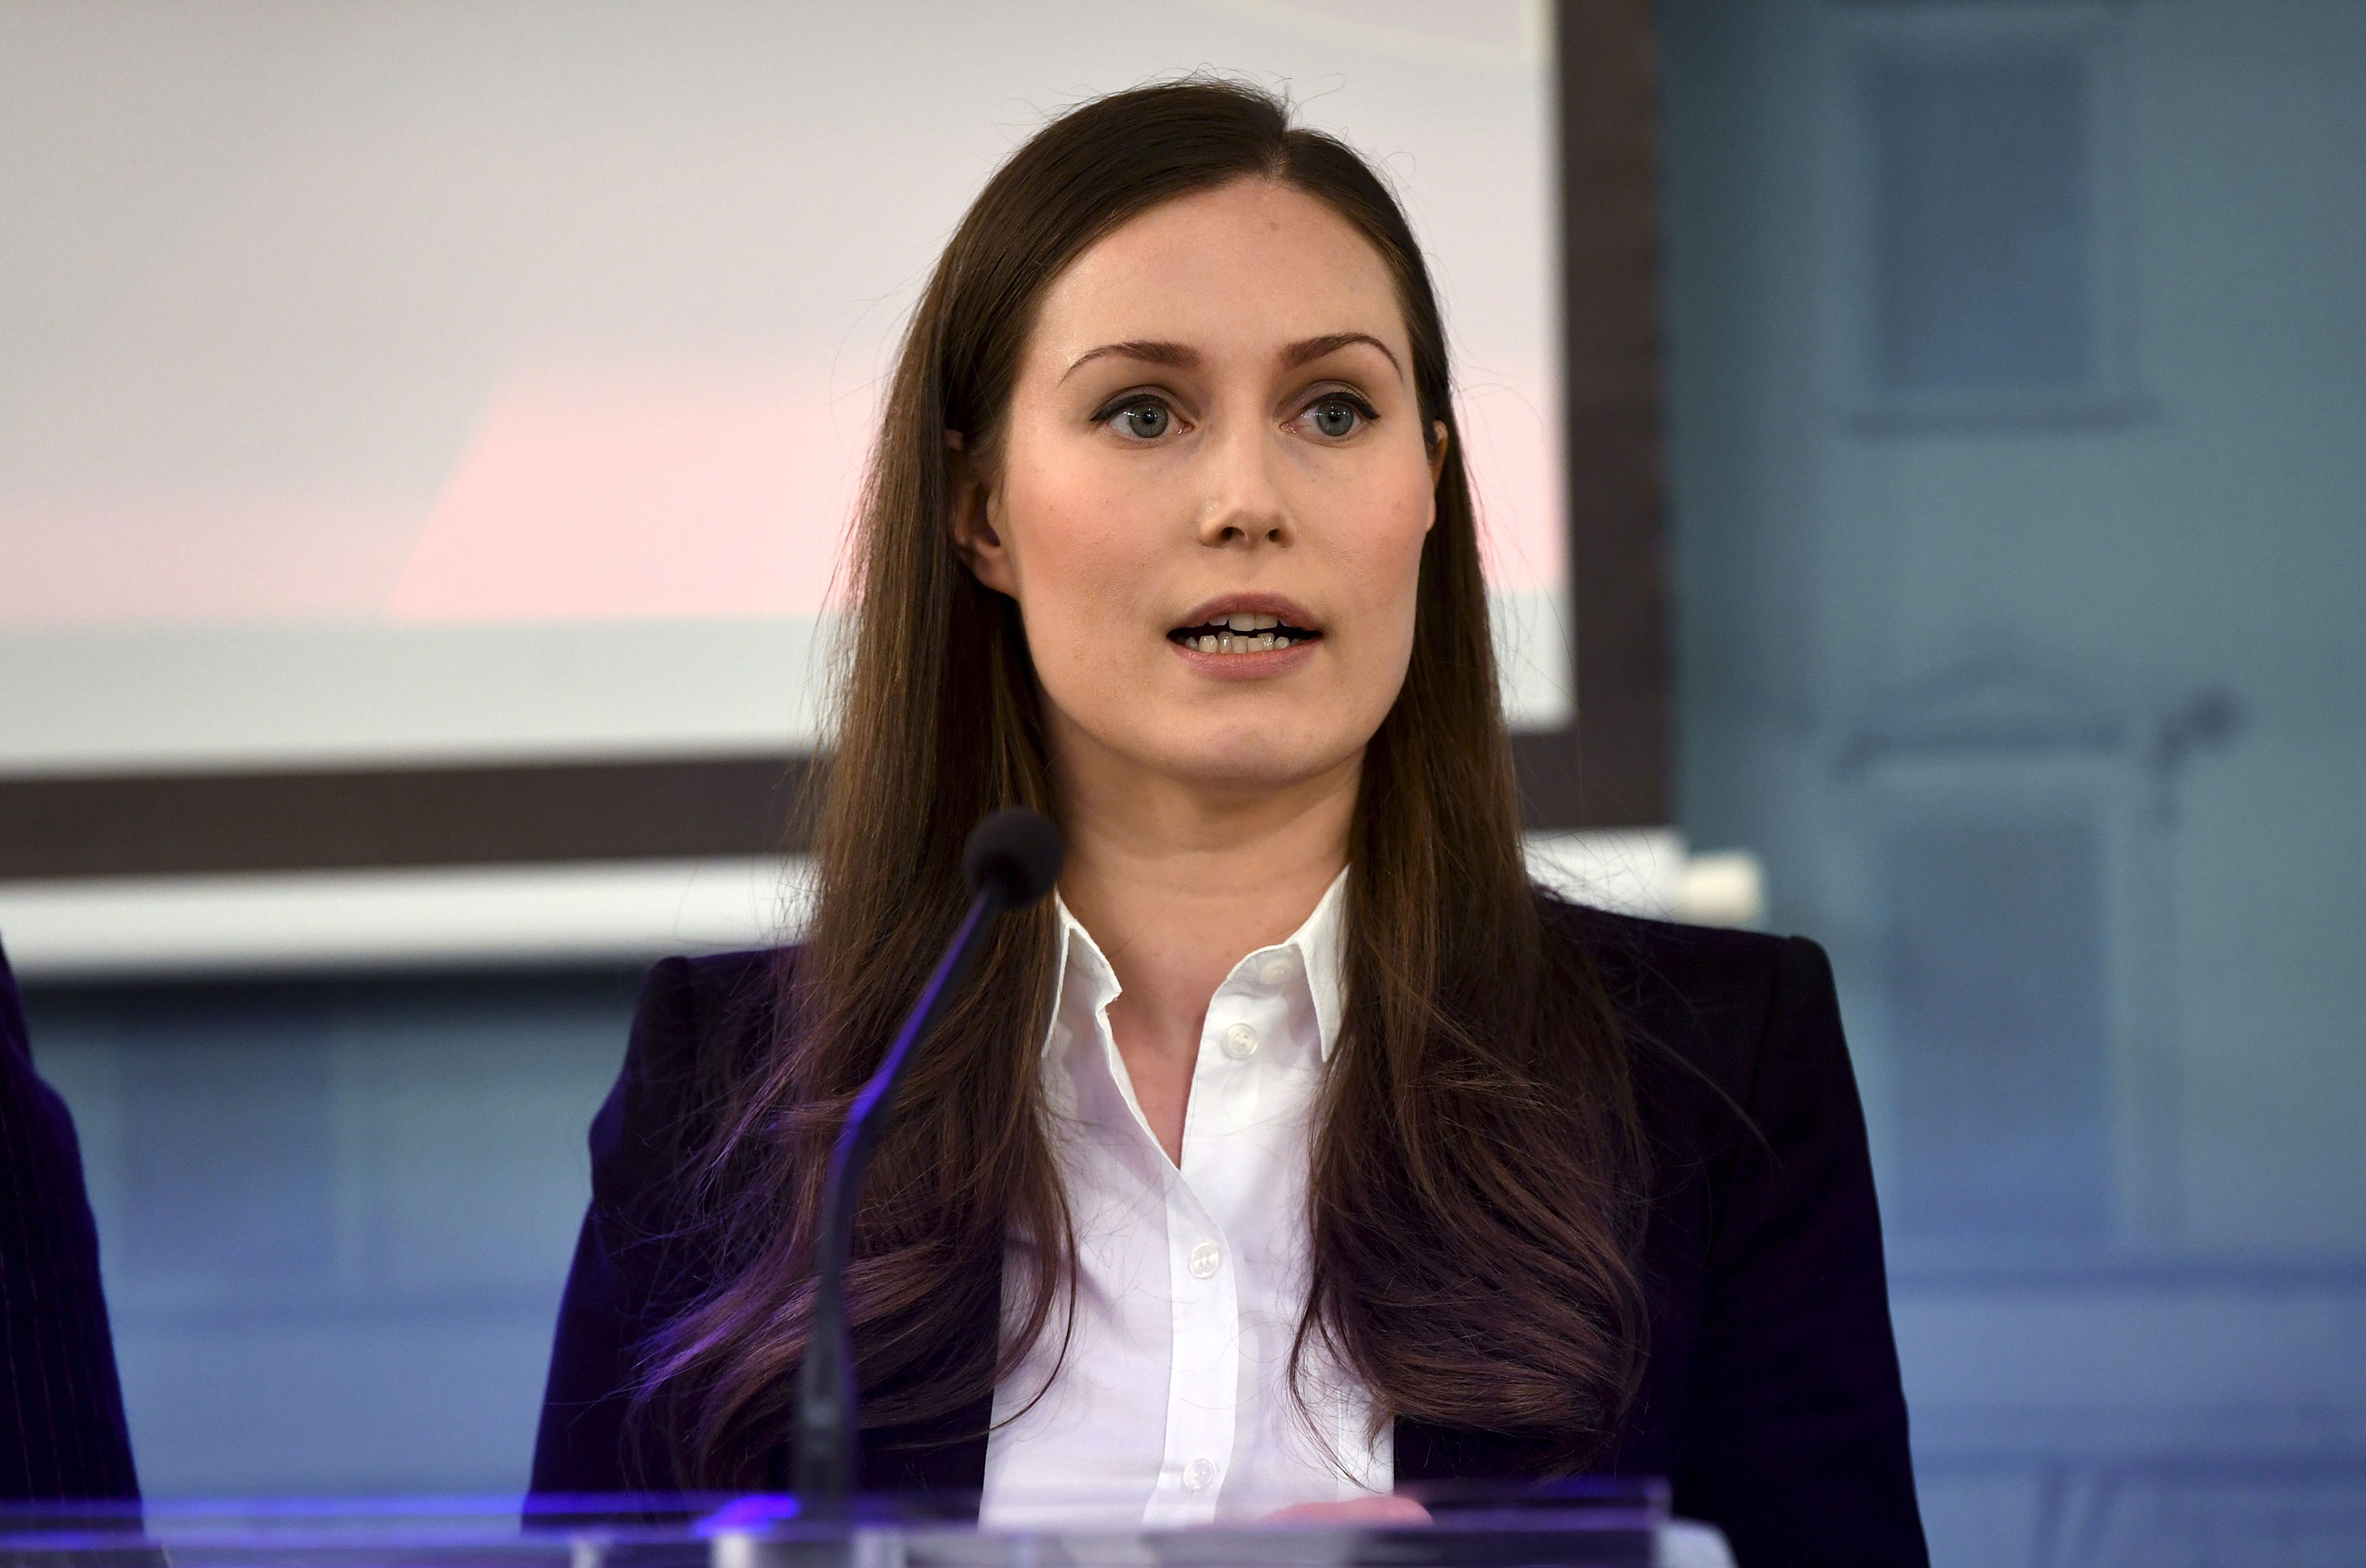 Prime Minister Sanna Marin speaks during a press conference on March 16.